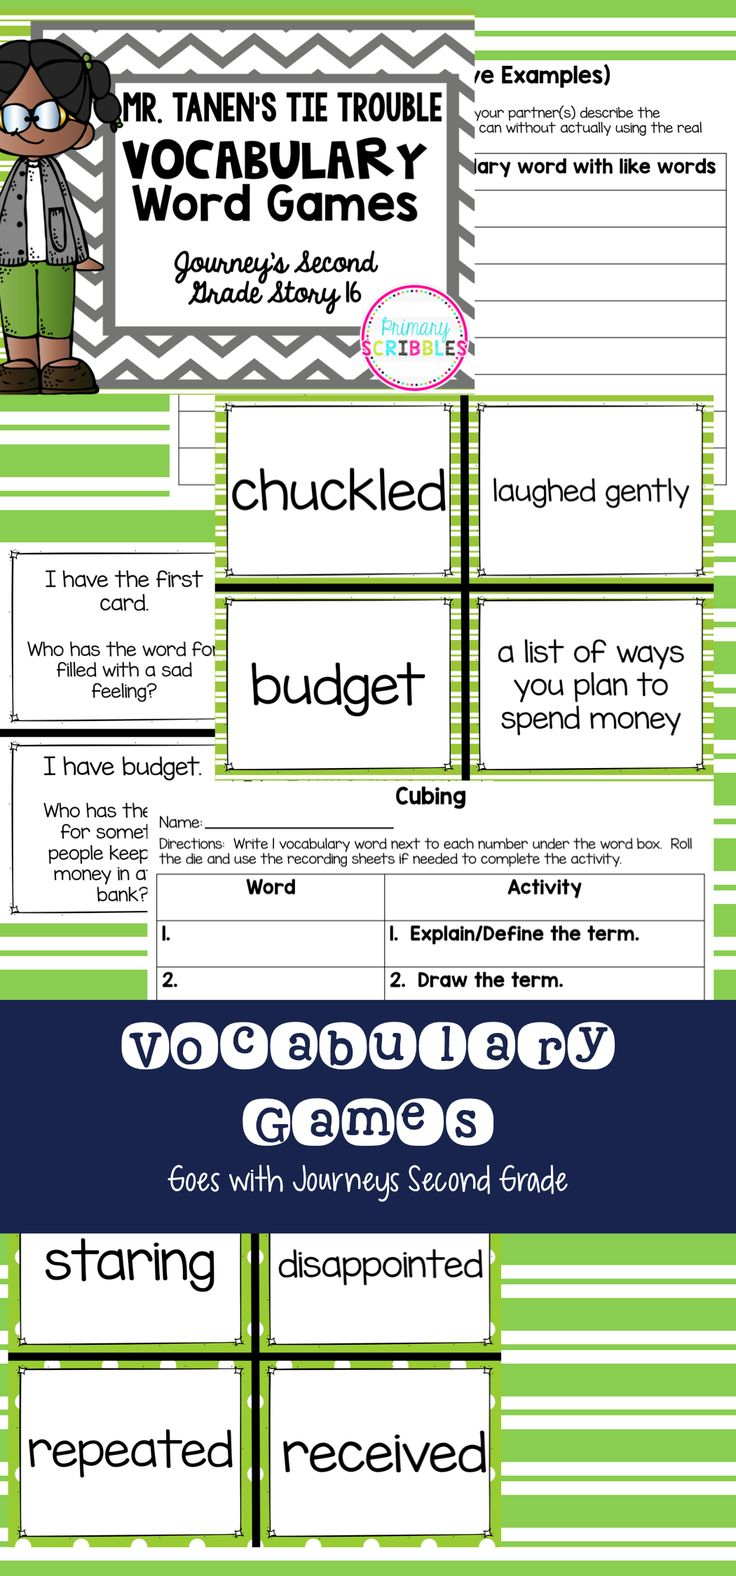 Worksheet Vocabulary For Second Grade mr tanens tie trouble vocabulary word games goes with journeys that go along the story second